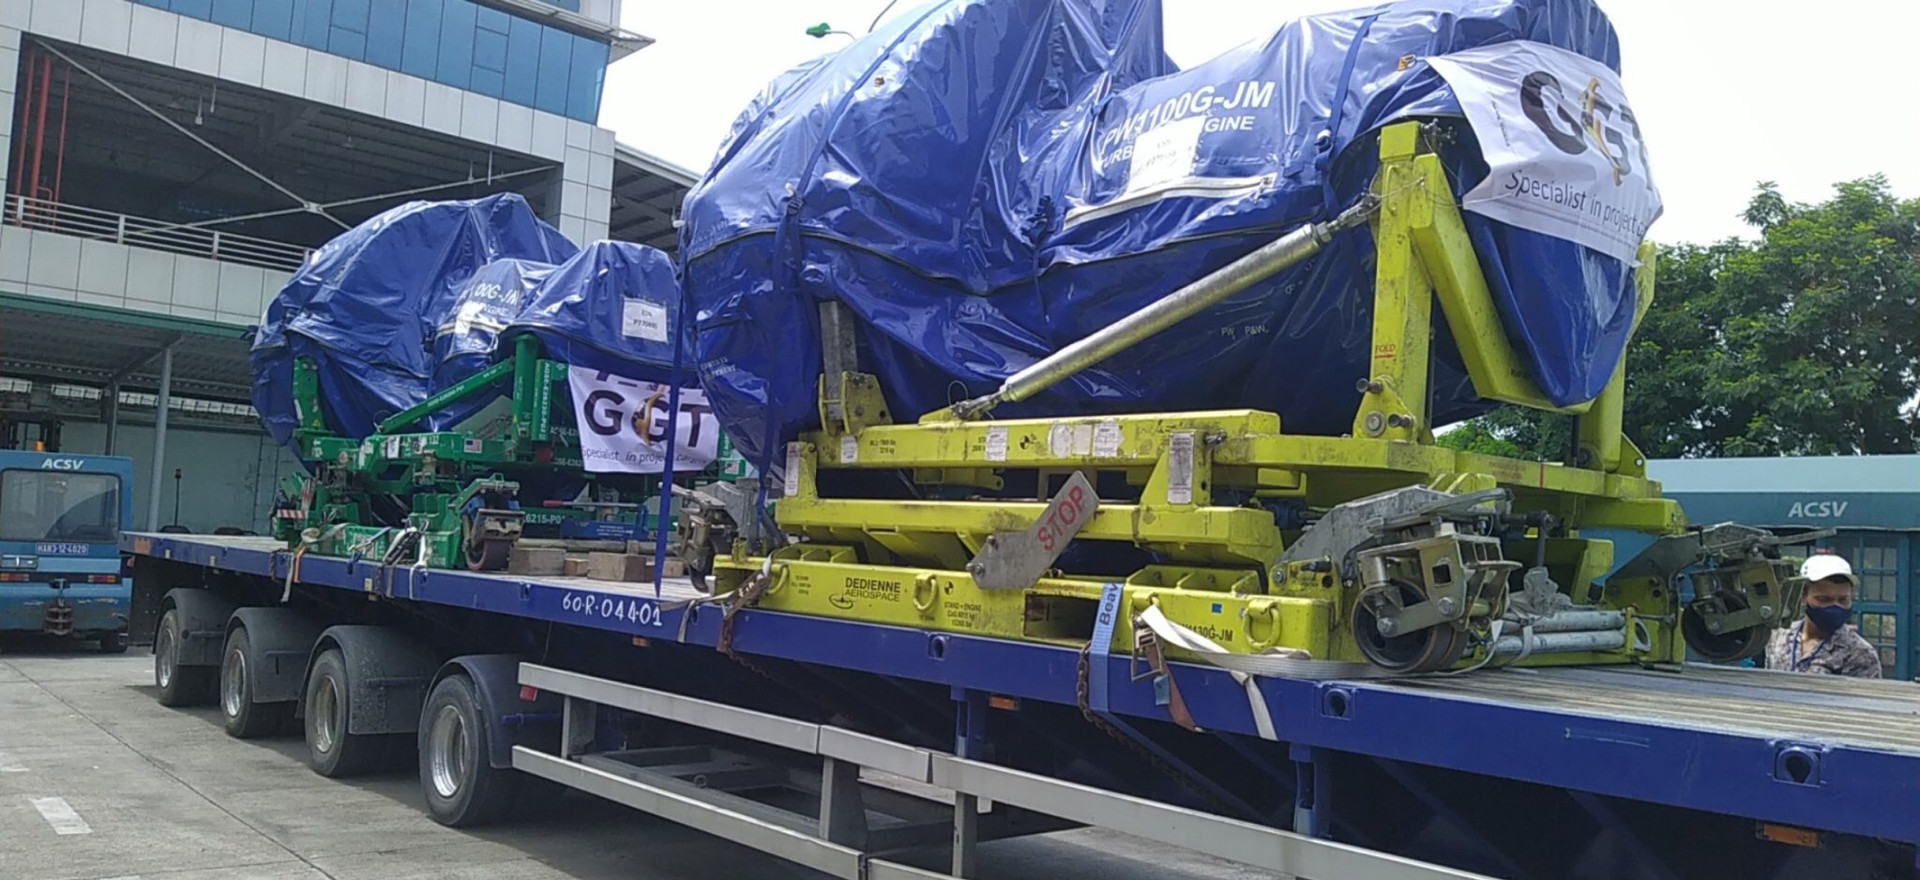 TRANSPORTING AIRBUS TURBO FAN ENGINES